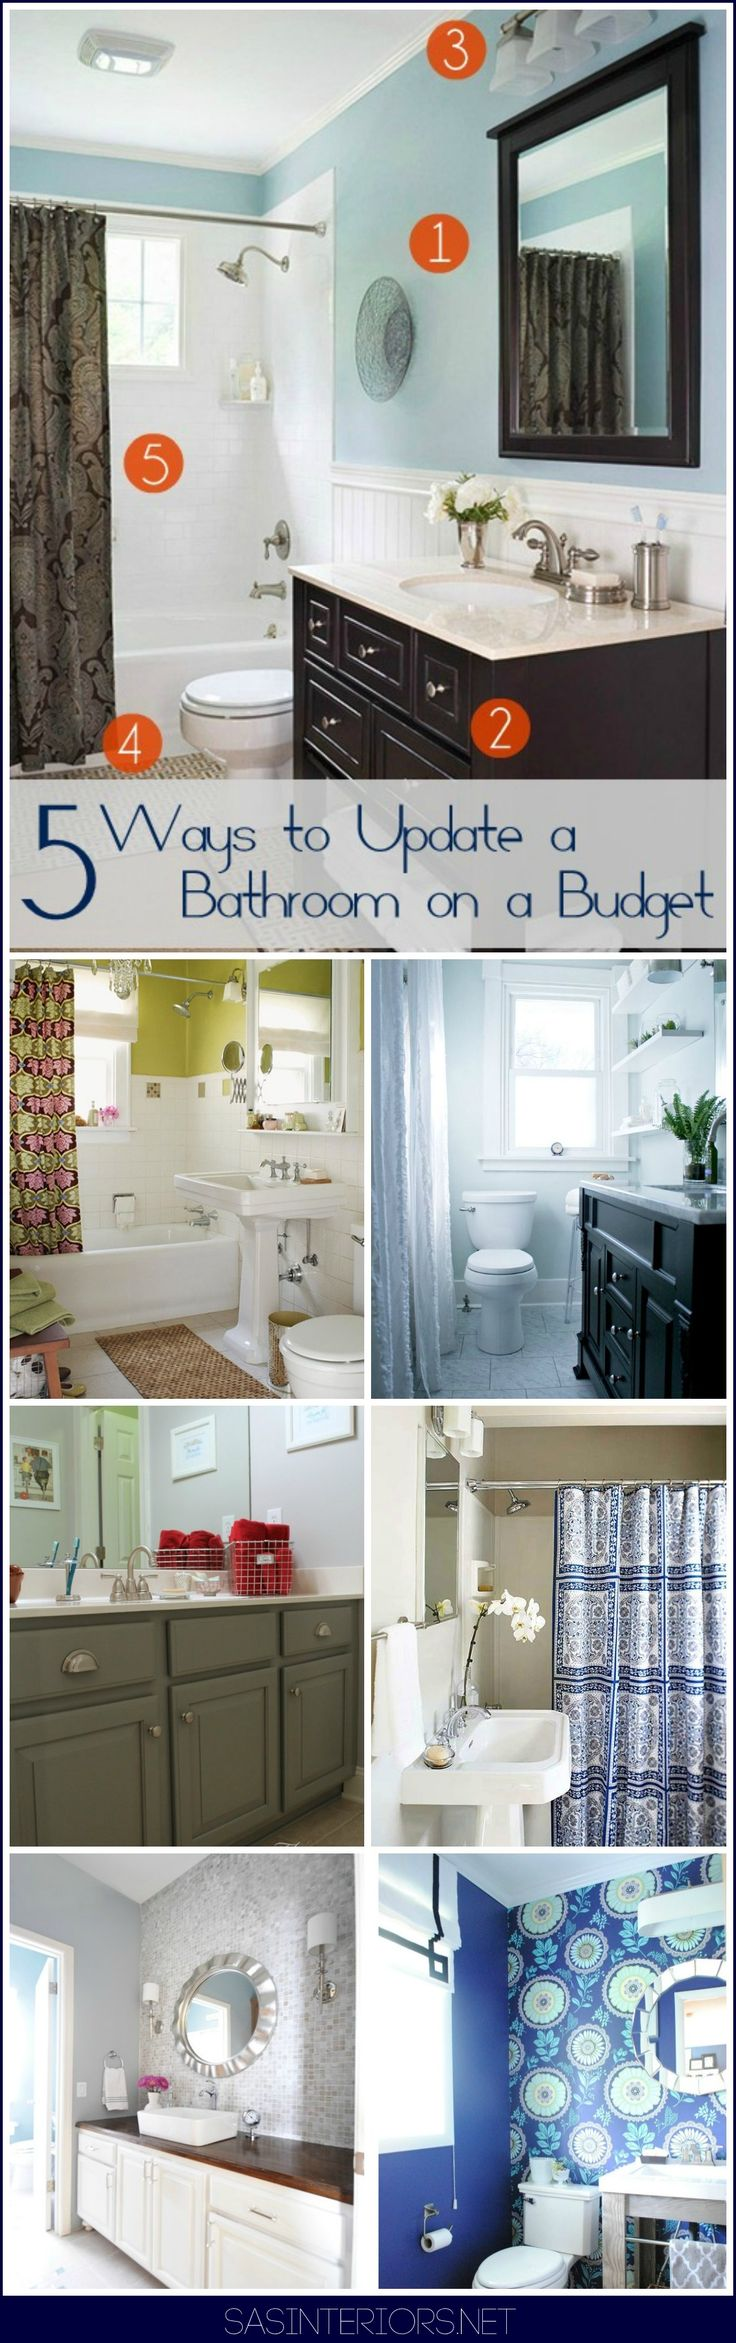 25 Best Ideas About Bathroom Updates On Pinterest Easy Bathroom Updates Restroom Ideas And Diy Bathroom Design Ideas